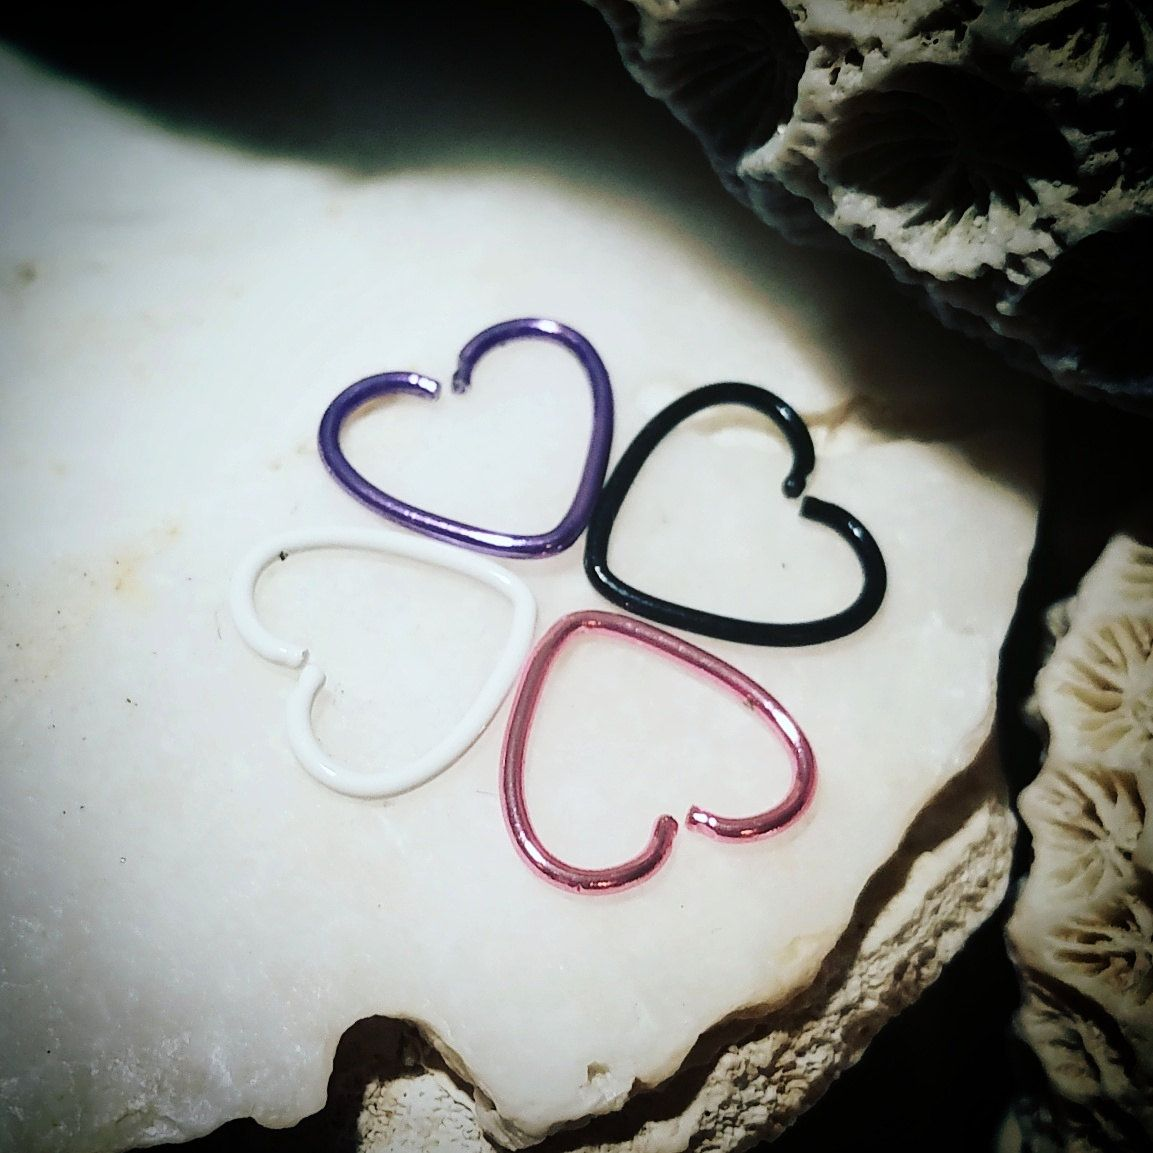 20g Stainless Steel Heart Hoop Piercing  Pink Nose Ring Cartilage Ring  Tragus Earring Rook Helix